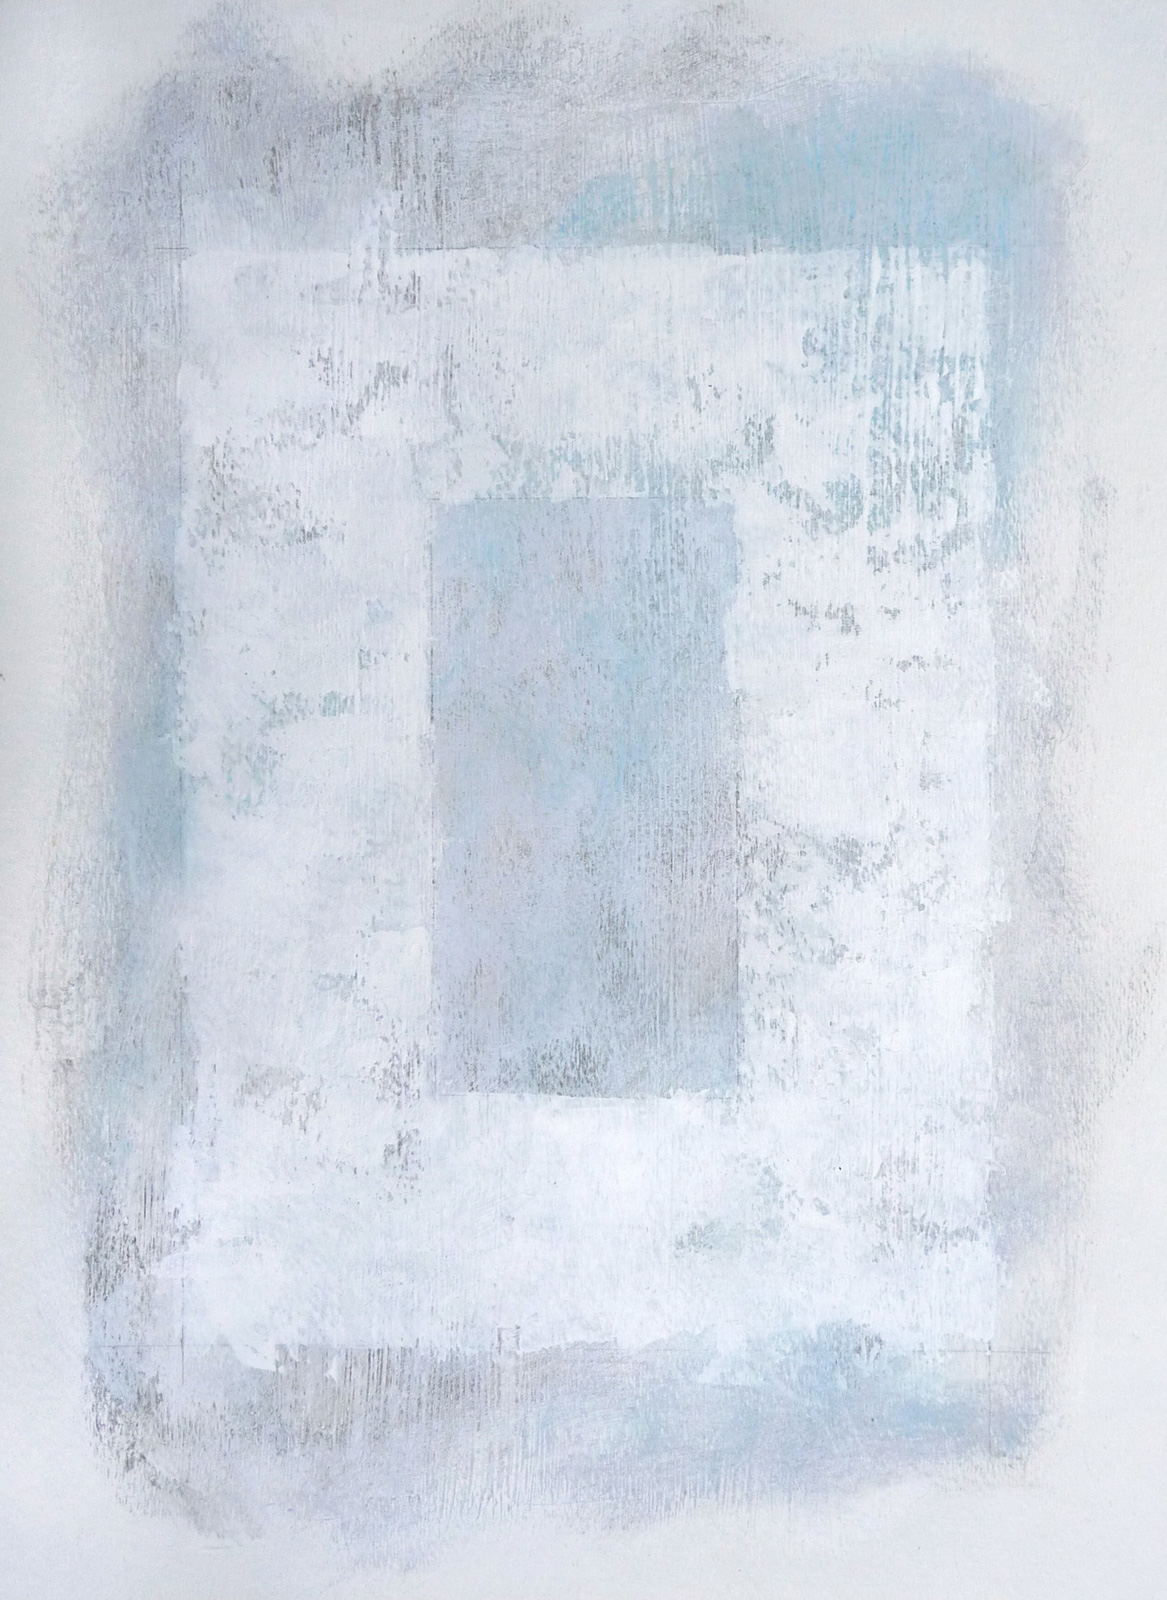 Svinøya in White III  , 2016. Mixed media on paper. 15 x 11 inches (38.1 x 27.9 cm)